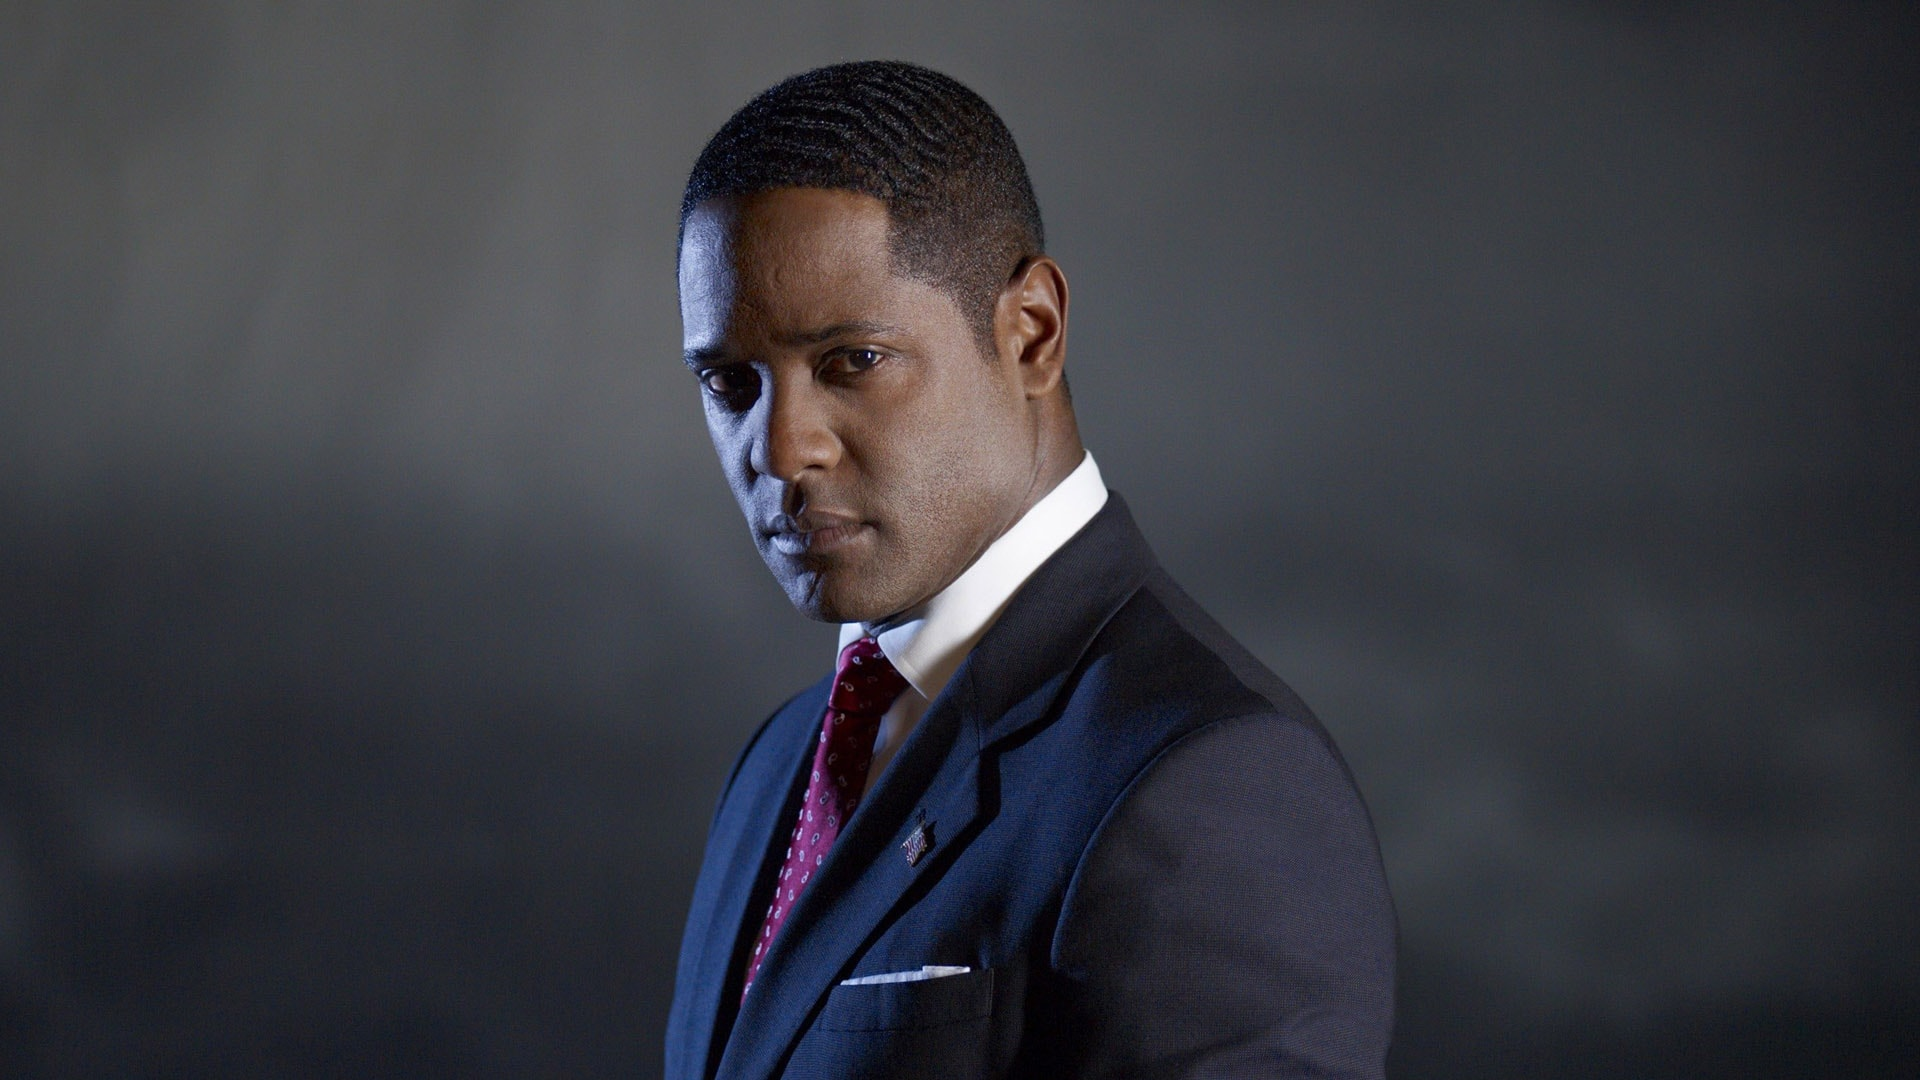 Blair Underwood Widescreen